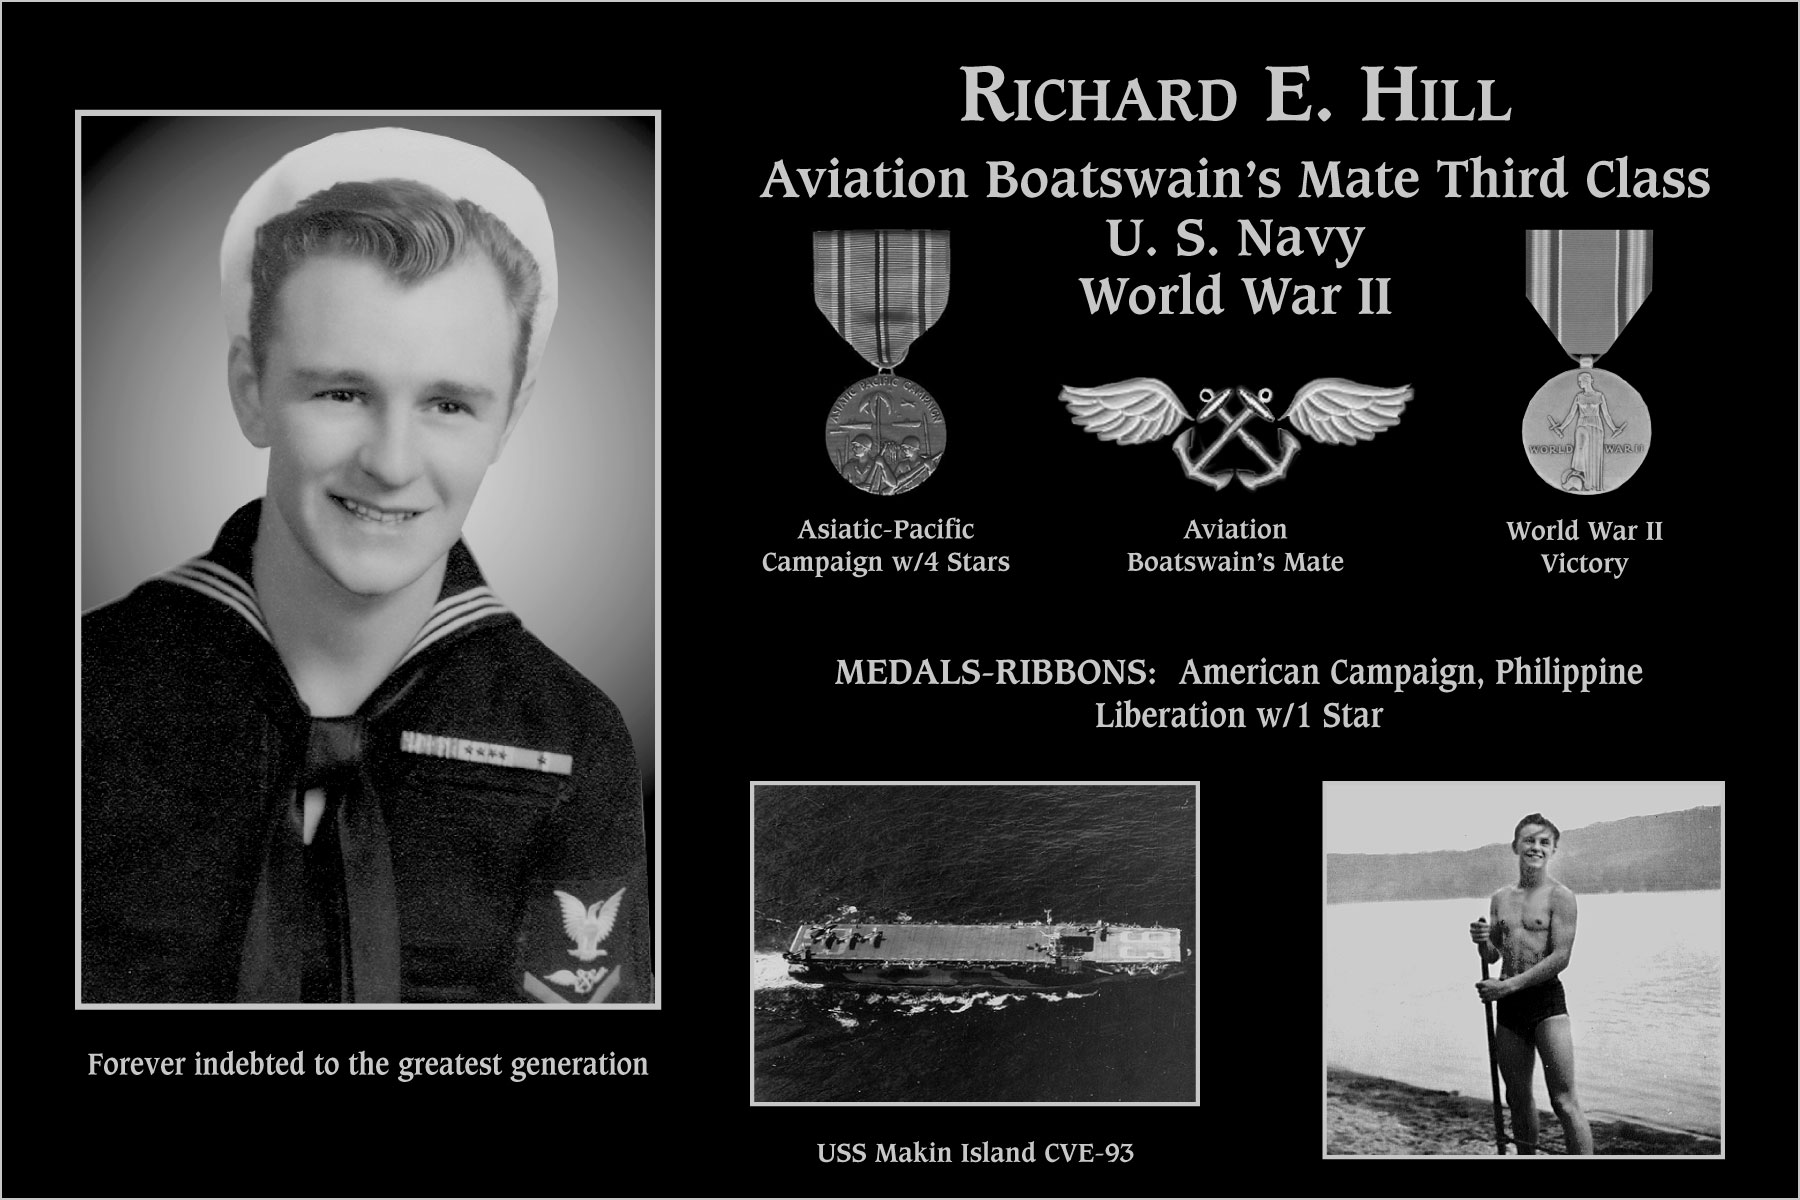 Richard E. Hill